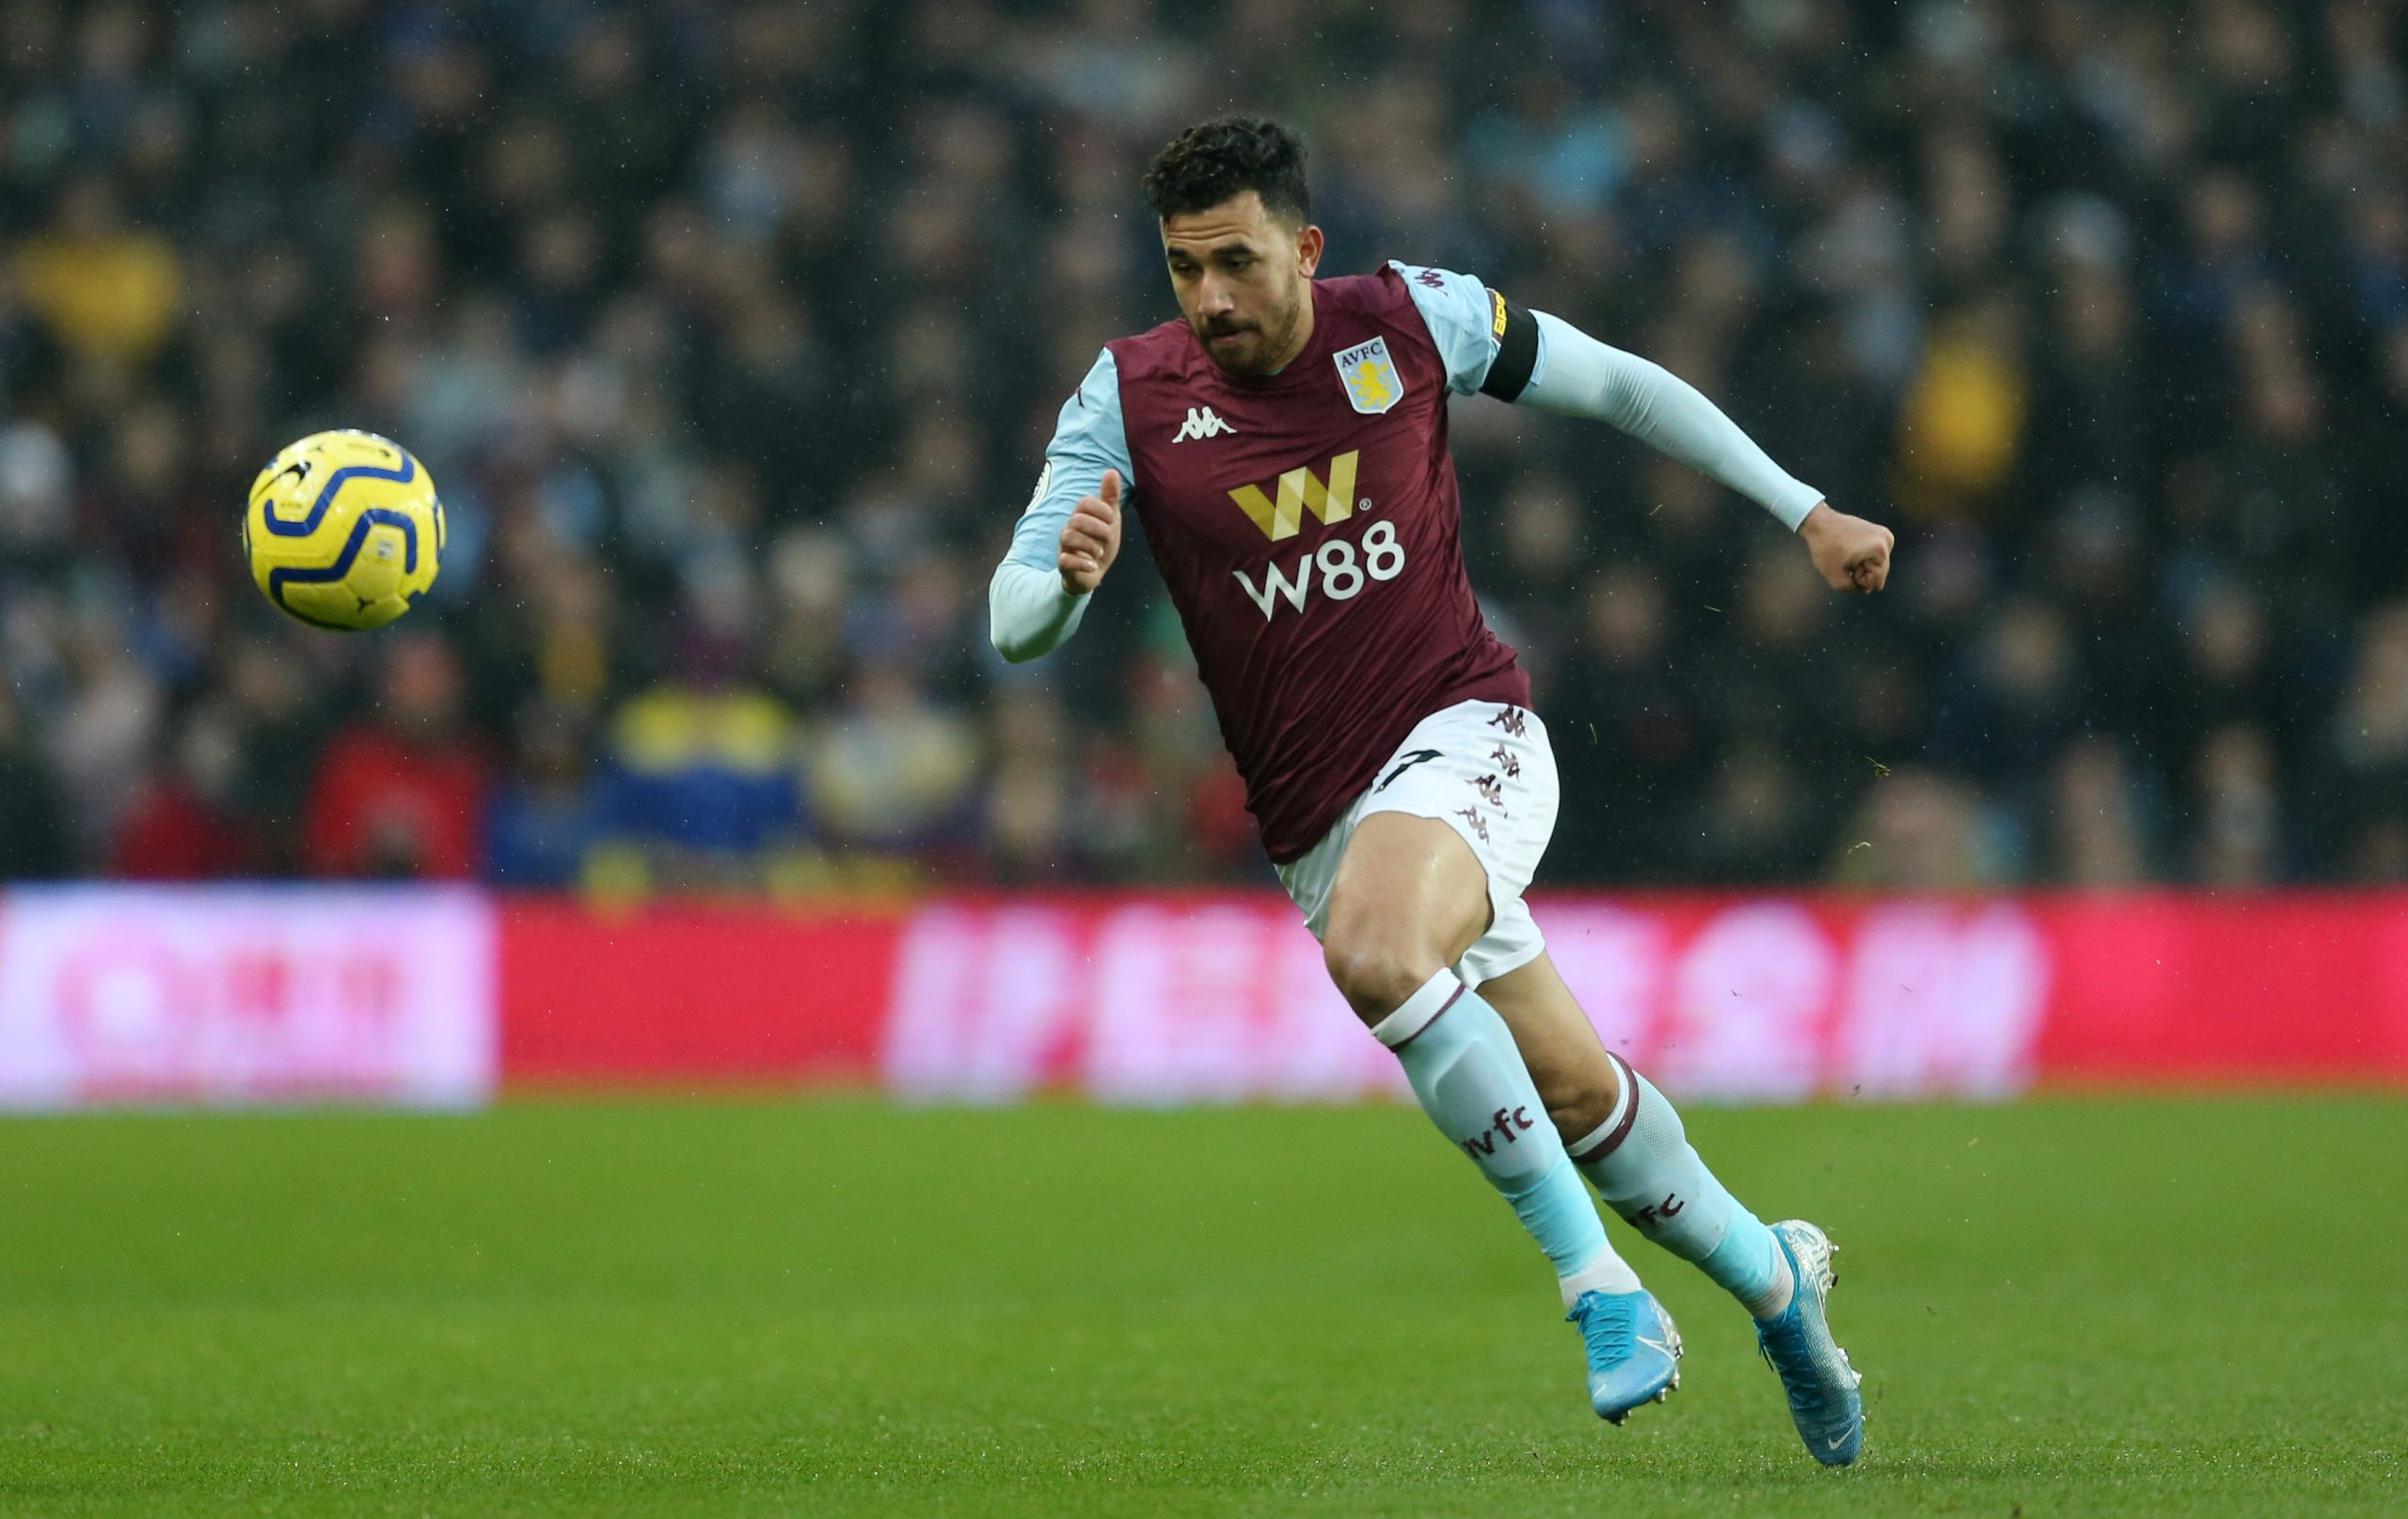 New Aston Villa winger Trezeguet has been far from impressive this season.